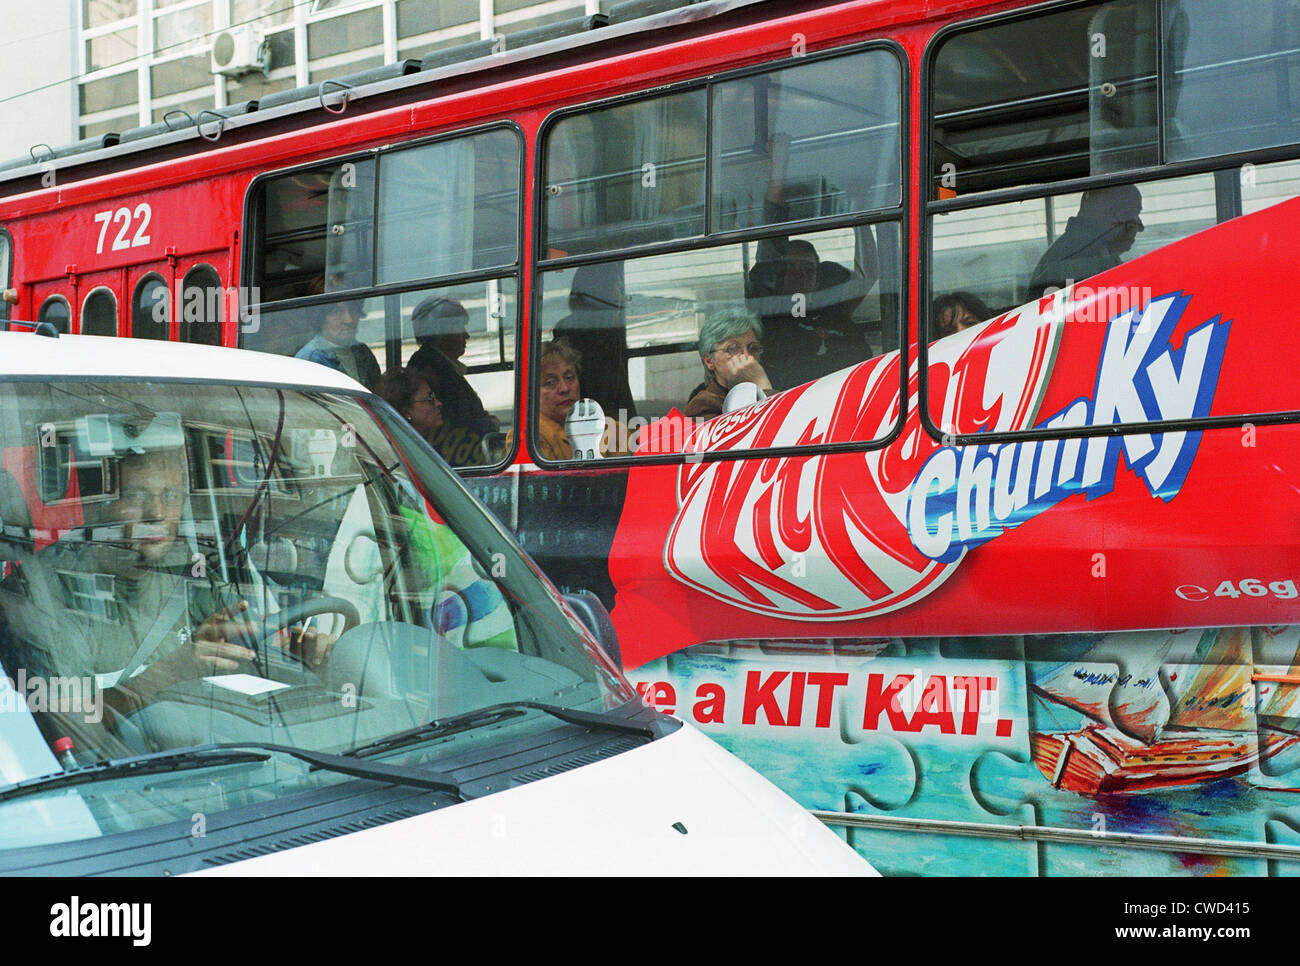 Advertising of KitKat Chunky on a tram in Sofia - Stock Image